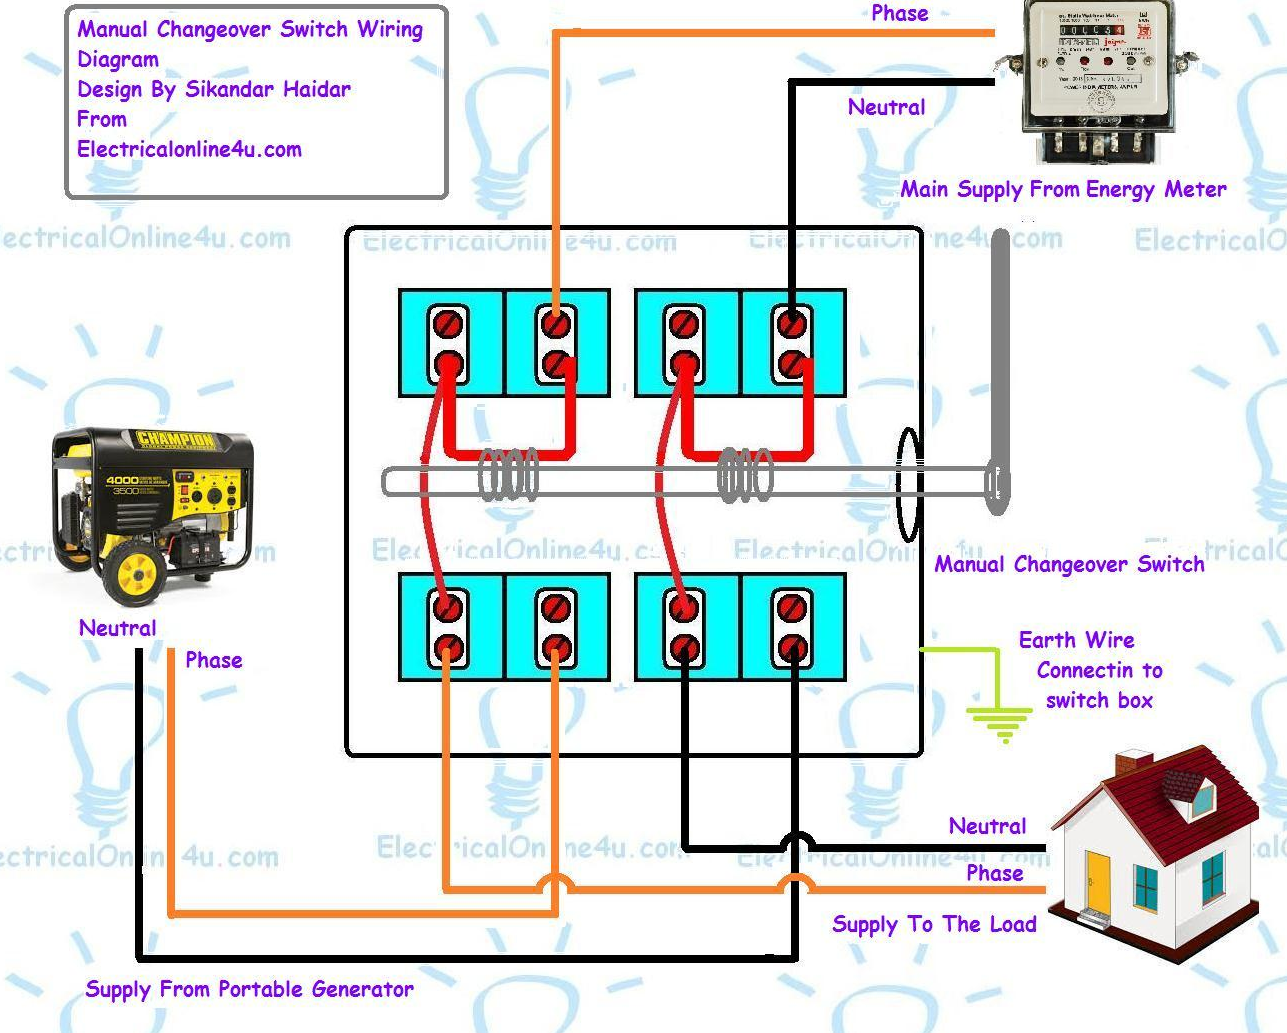 manual%2Bchangeover%2Bswitch%2Bwiring%2Bdiagram manual changeover switch wiring diagram for portable generator generator changeover switch wiring diagram at fashall.co